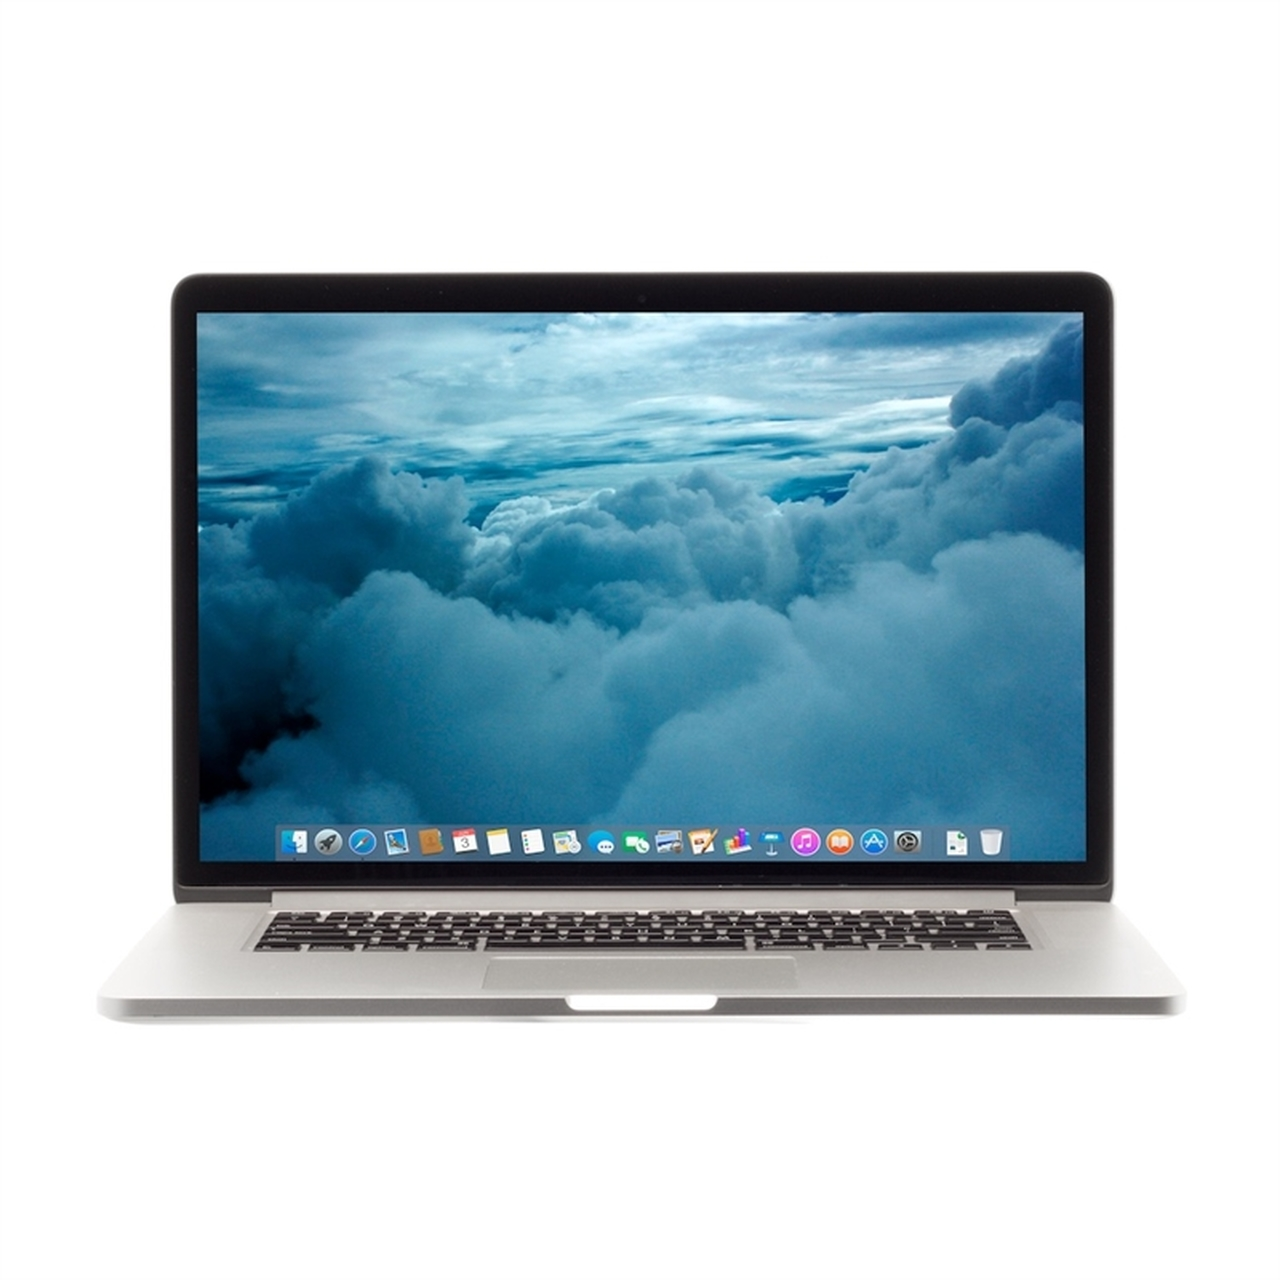 Продано/Продаж/б/в MacBook Pro 15″ Retina 2012 Intel Core i7/8/256 SSD